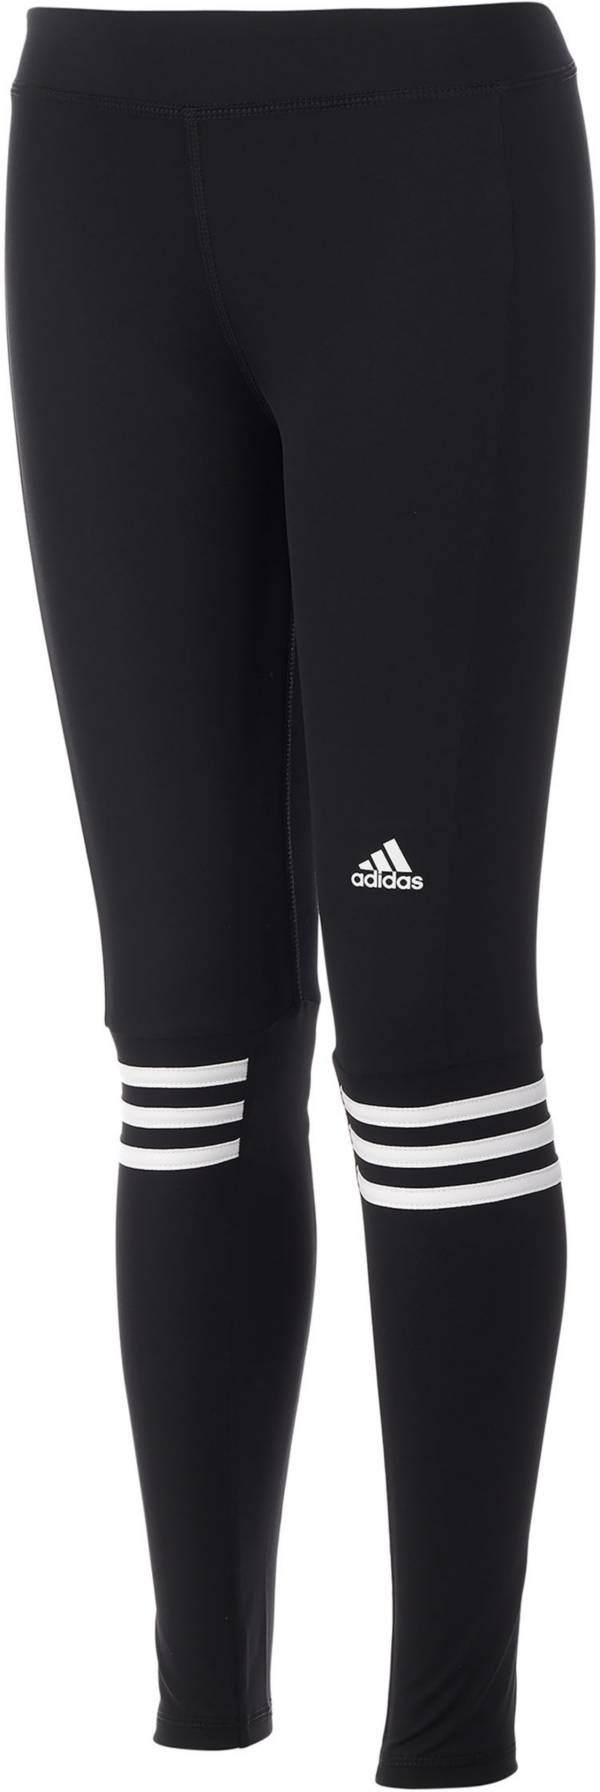 adidas Girls' Track and Field Tights product image